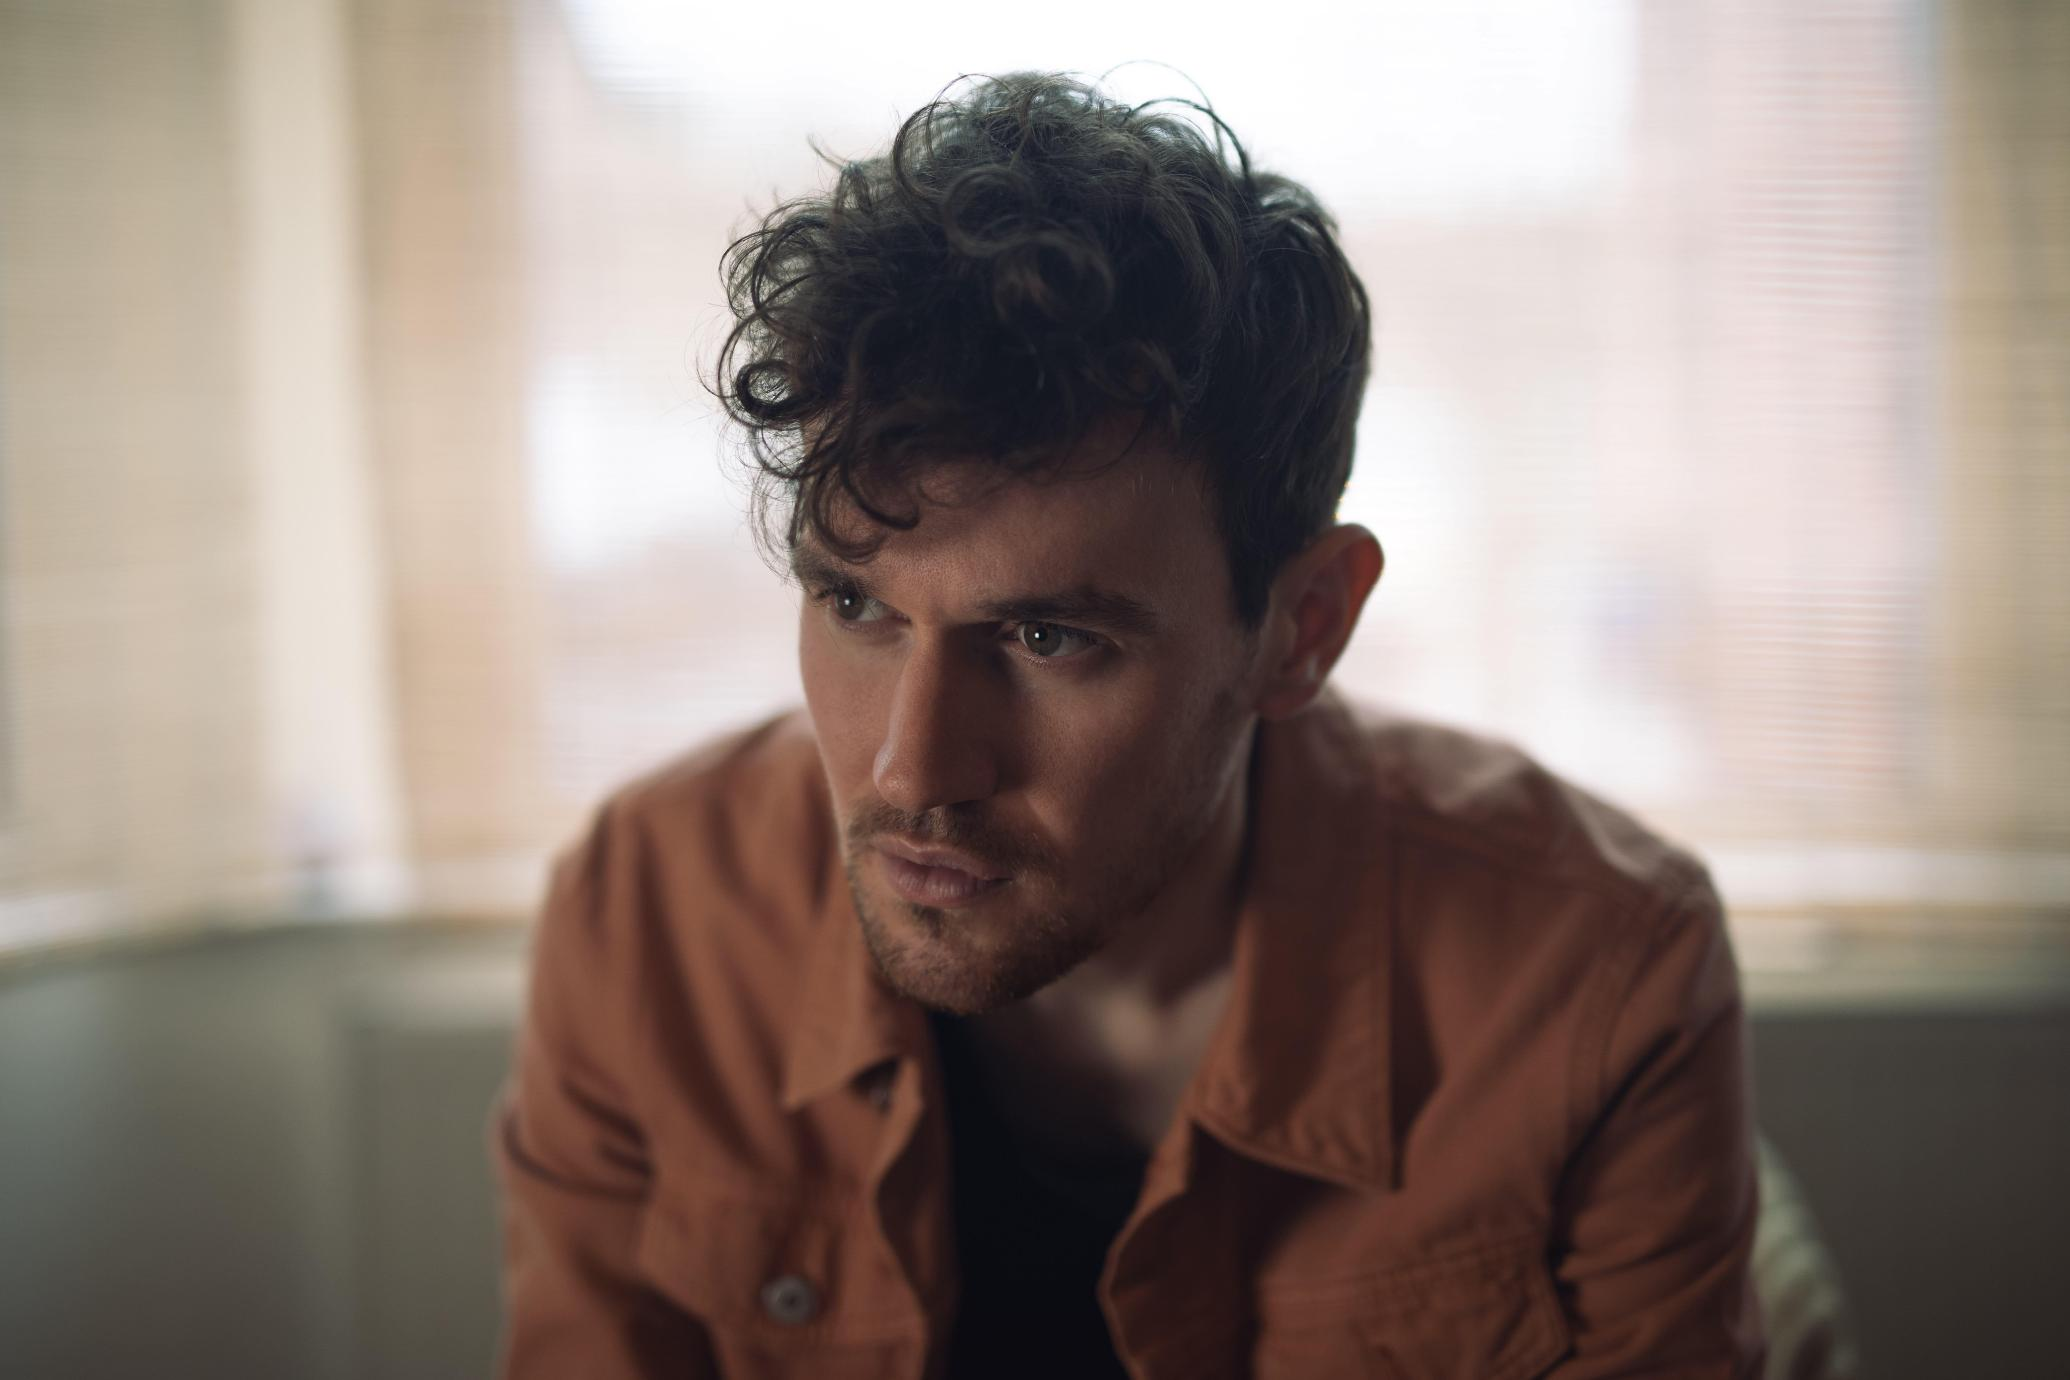 UK singer/songwriter Tommy Ashby discusses his sound, songs and the inspirations behind his new Golden Arrow EP